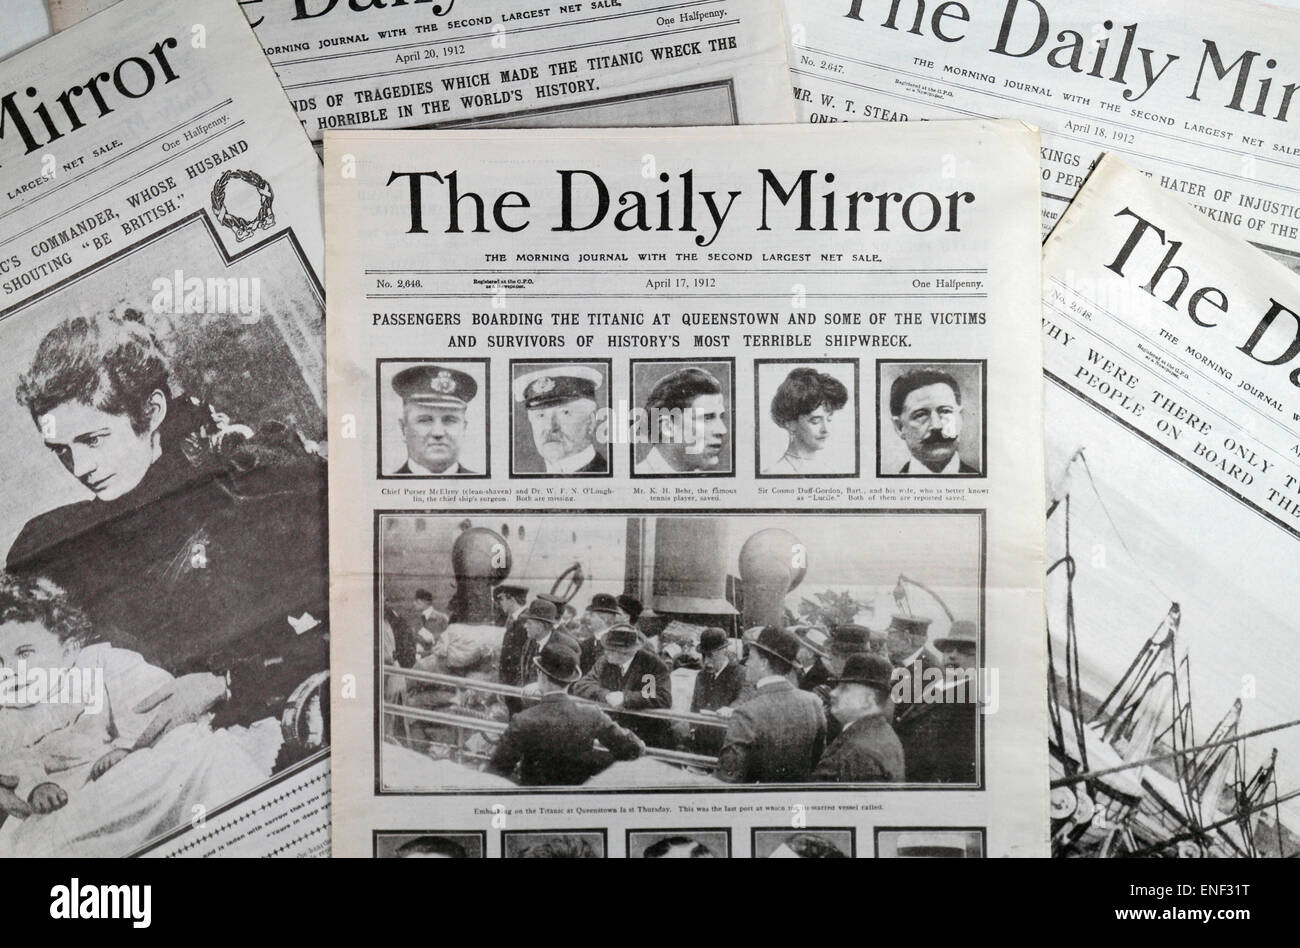 Reproduction Daily Mirror newspapers following the sinking of the SS Titanic on 14–15 April 1912. - Stock Image